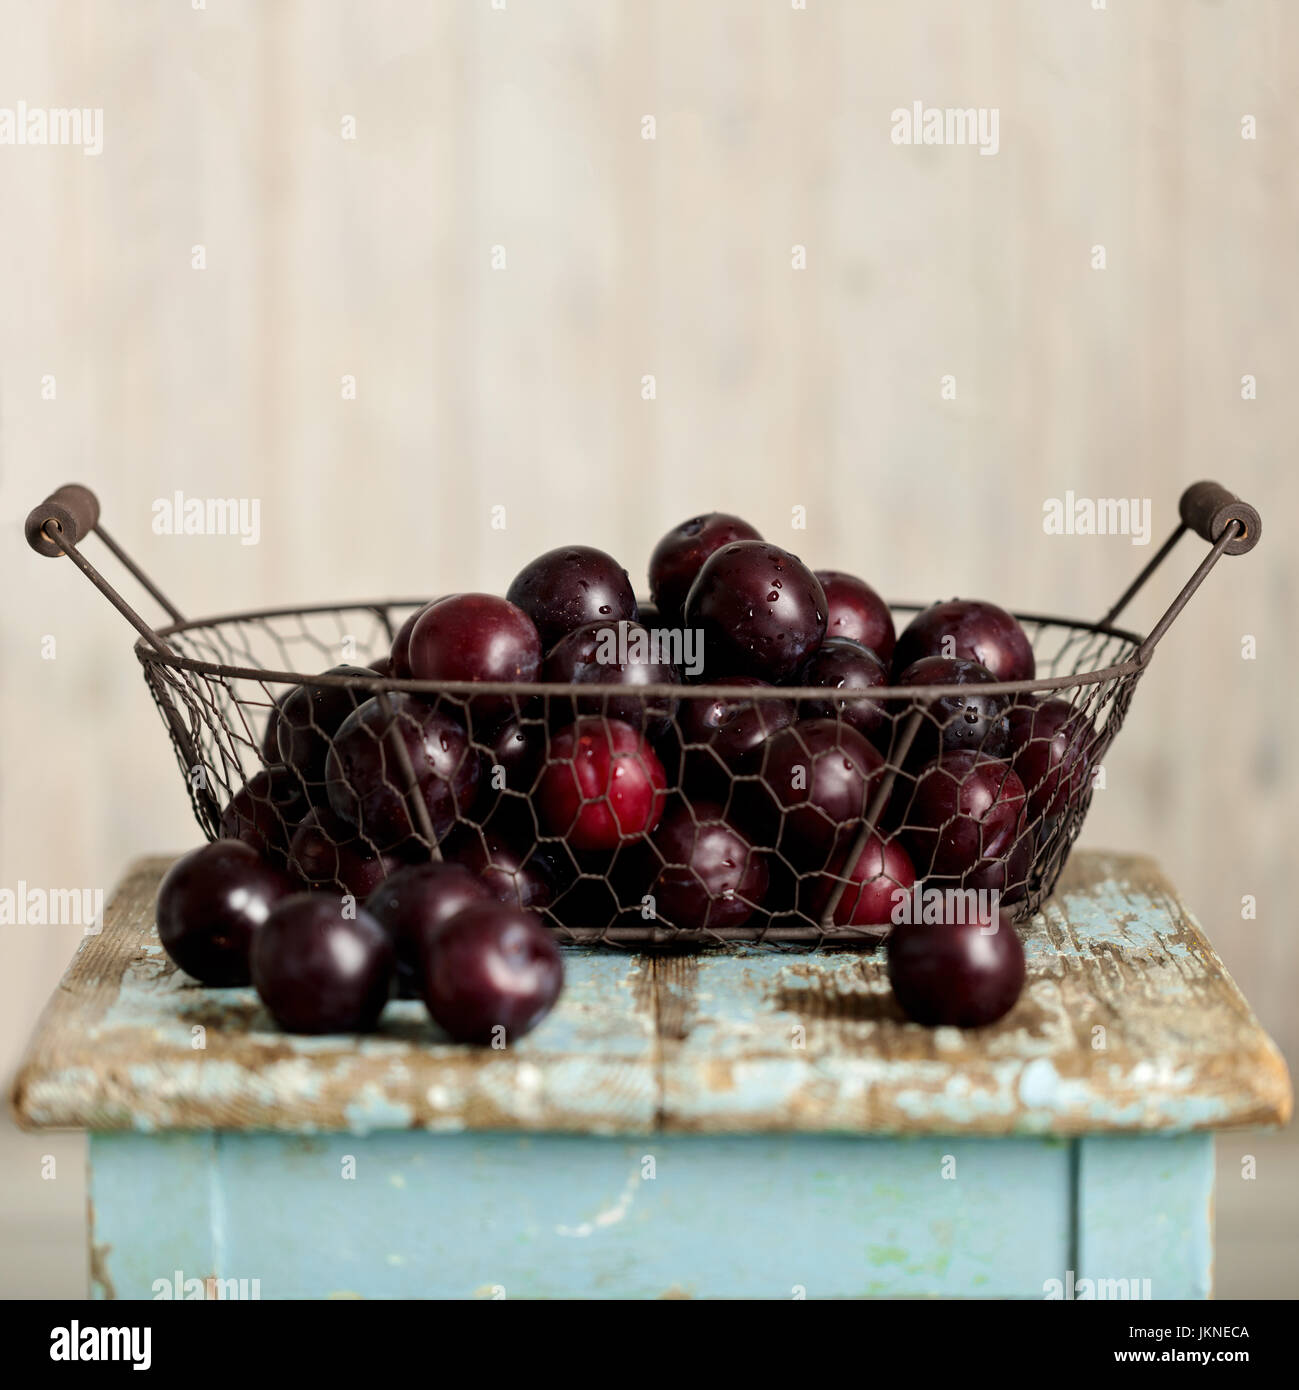 Ripe plums in a basket on a wooden background. Selective focus. - Stock Image